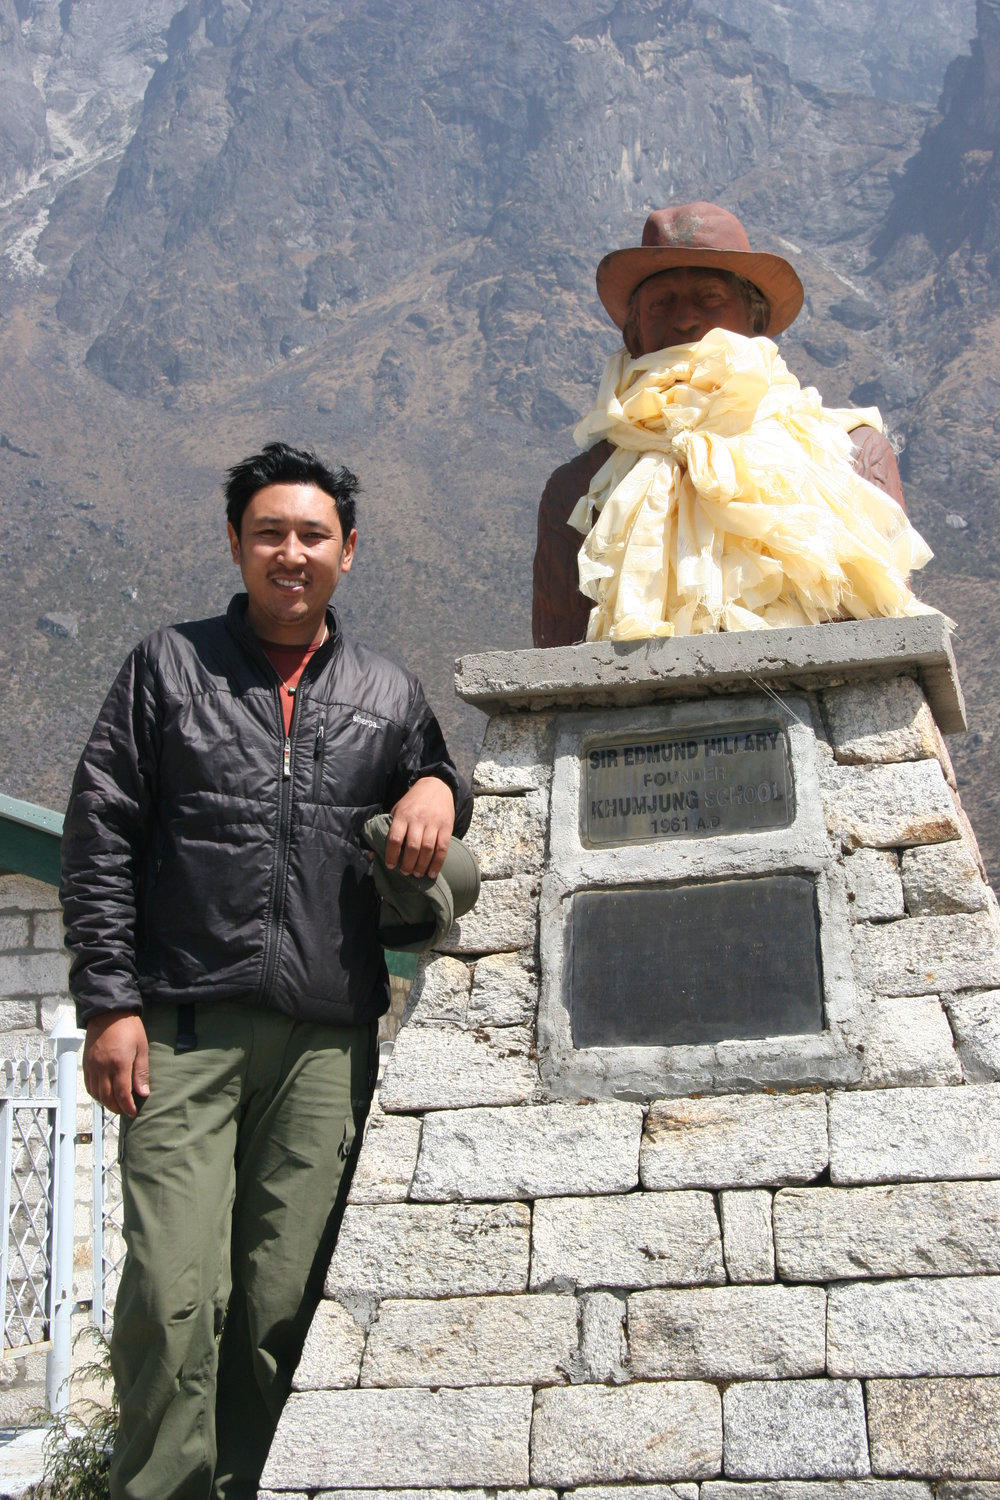 Mingma next to statue of sir edmund hillary